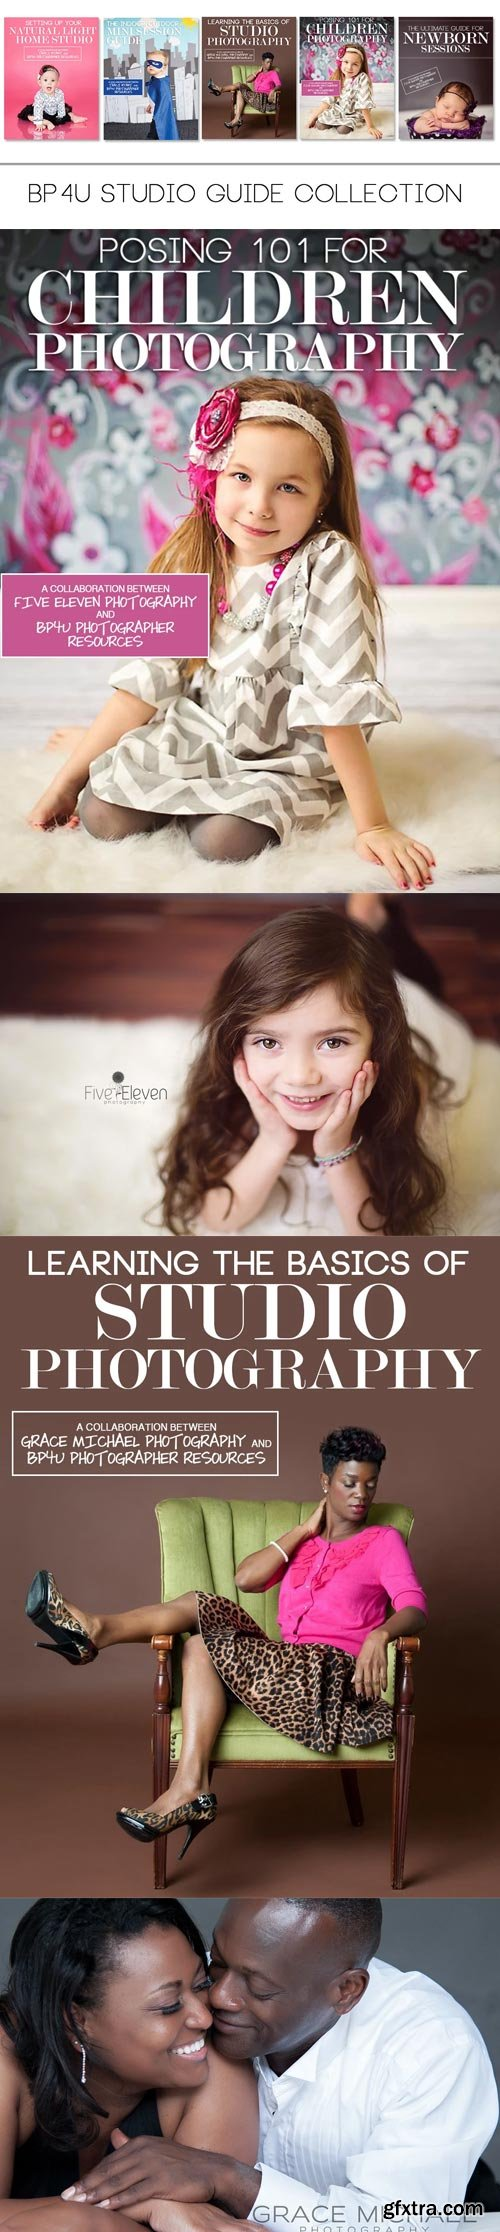 Photographer Resources - BP4U Studio Guide Collection